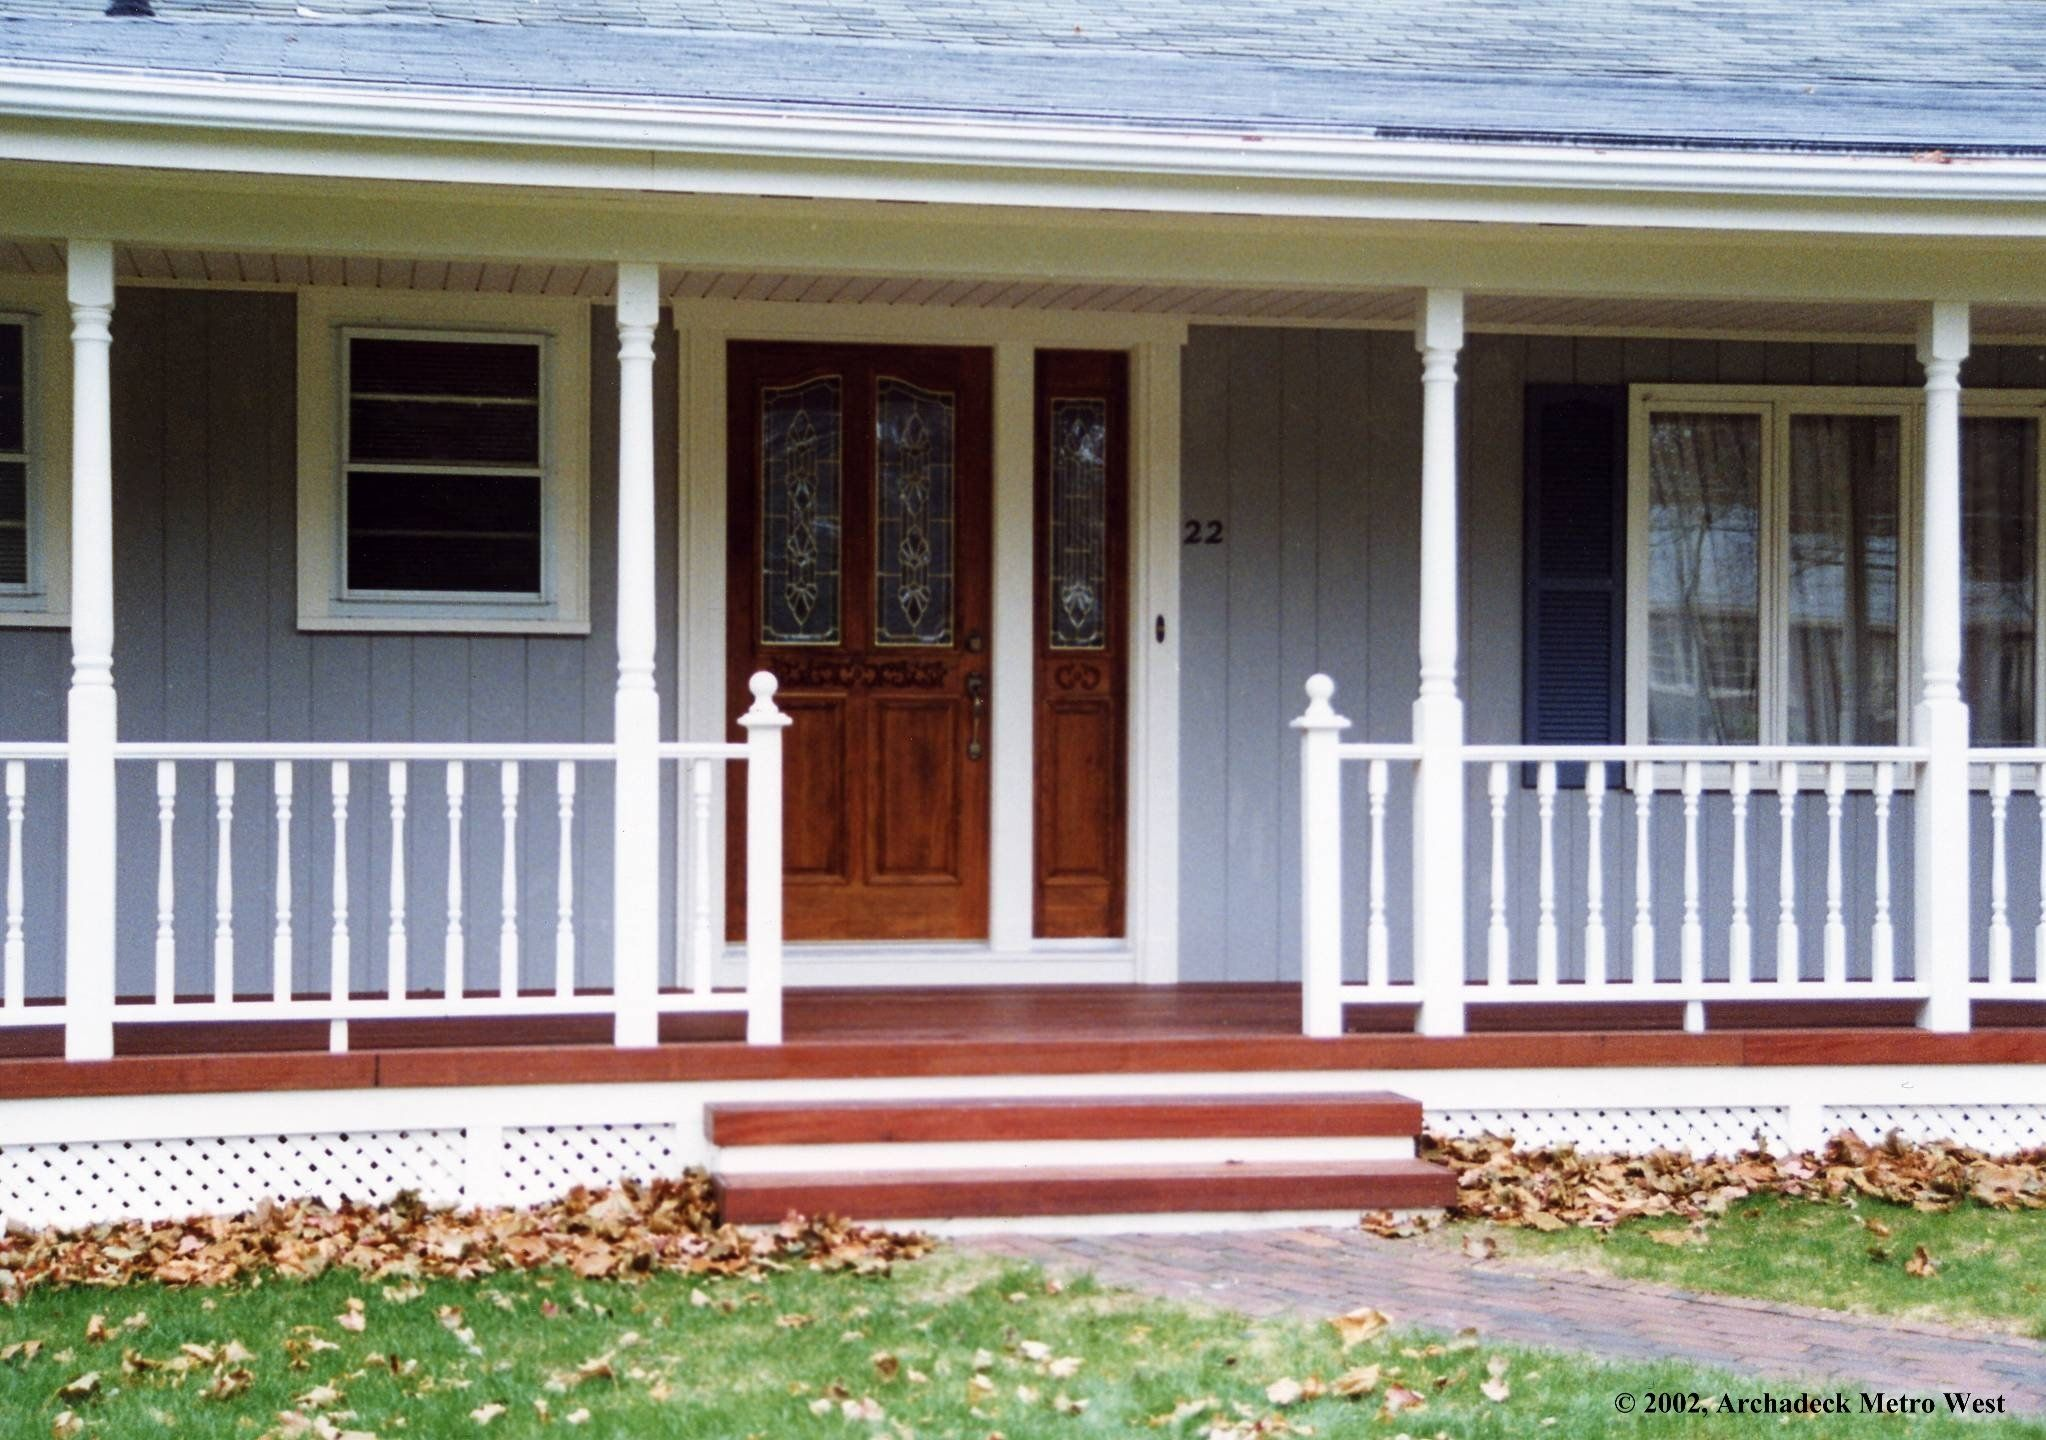 Image Of Six Kinds Of Porches For Your Home Suburban Boston Decks And With Regard To Adding A Porch To A Ranch Style House Adding A Por House With Porch Ranch